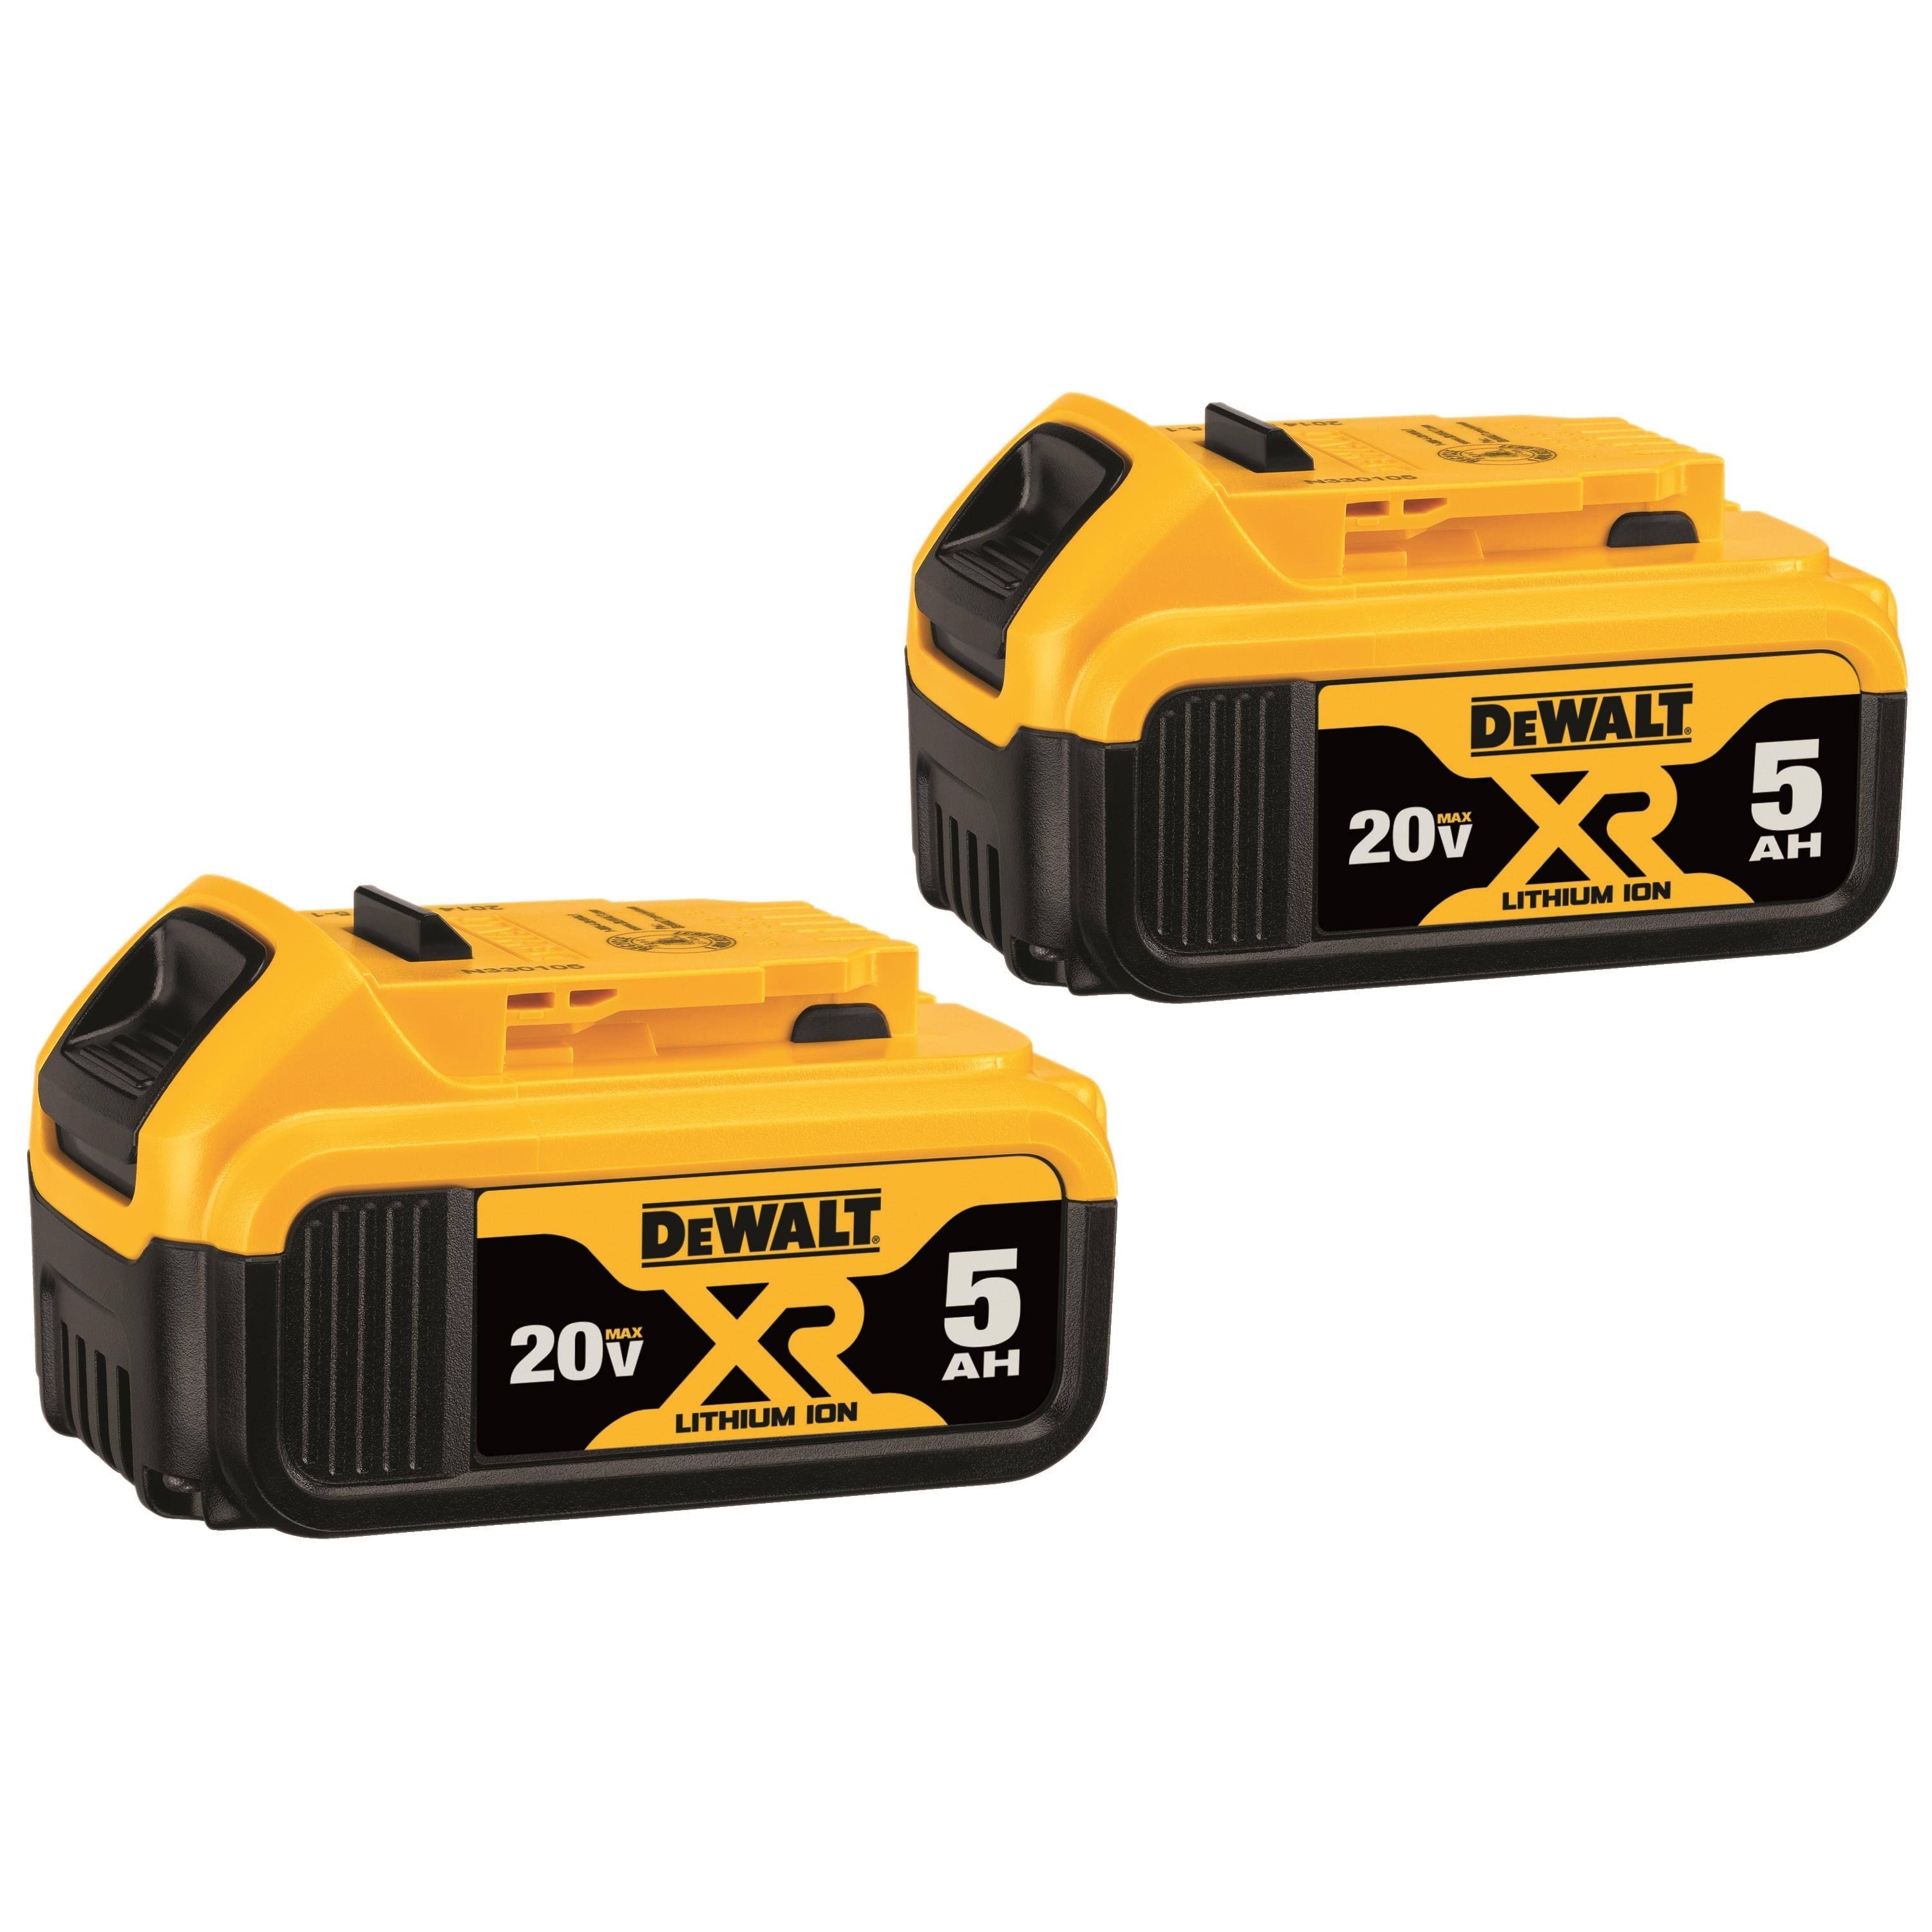 Dewalt 20 Volt Lithium Power Tool Batteries - 2pk